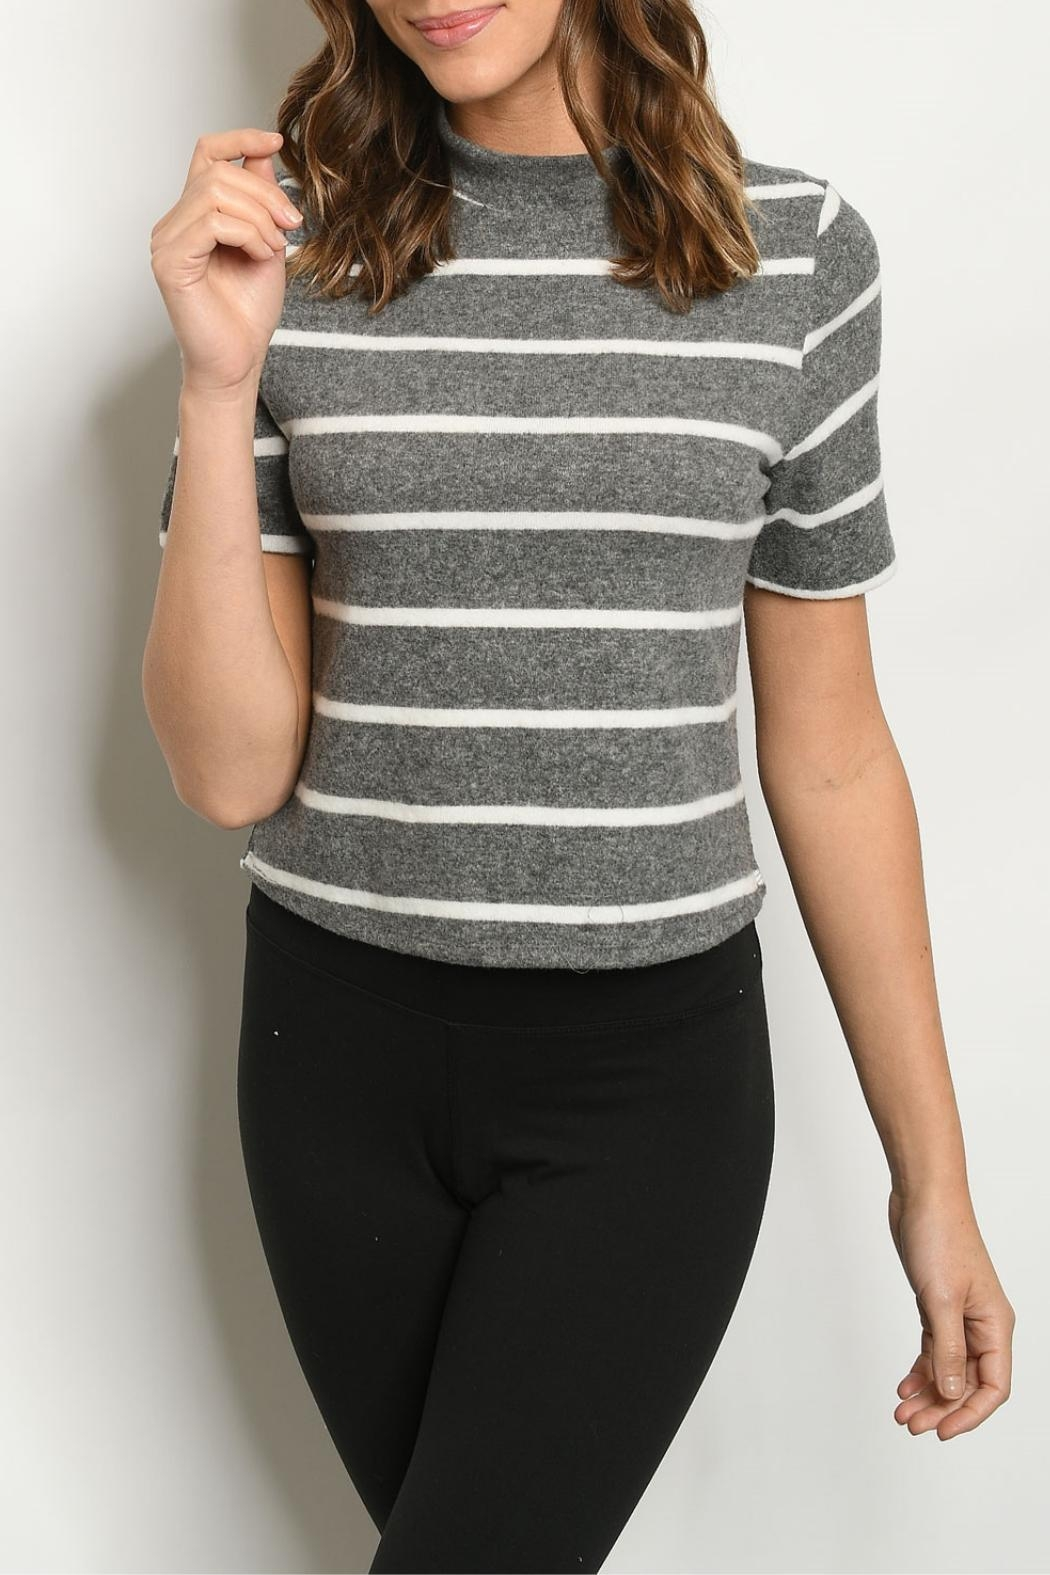 FORE Charcoal Ivory-Striped Top - Main Image